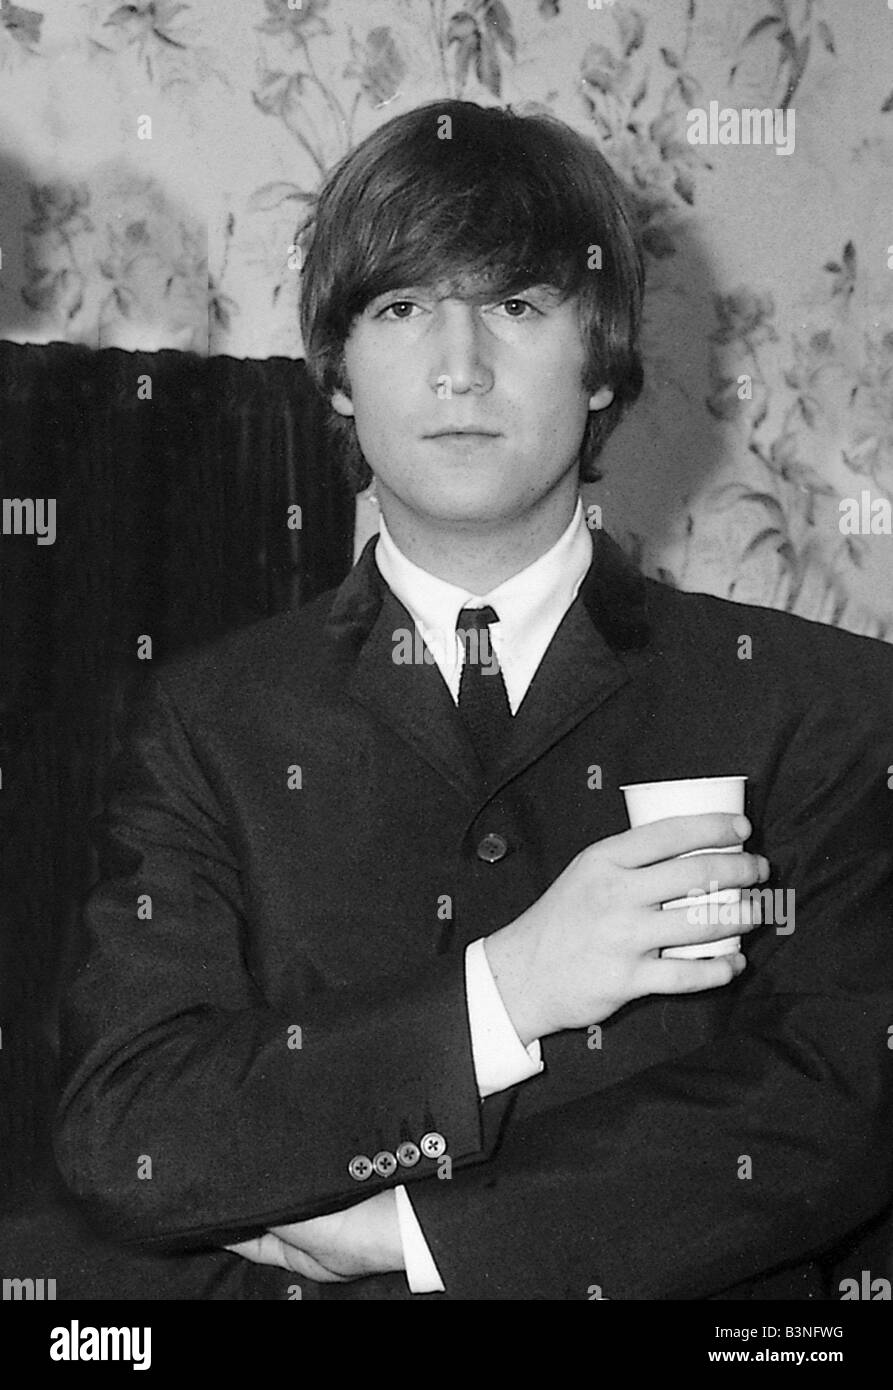 Beatles 1964 John Lennon